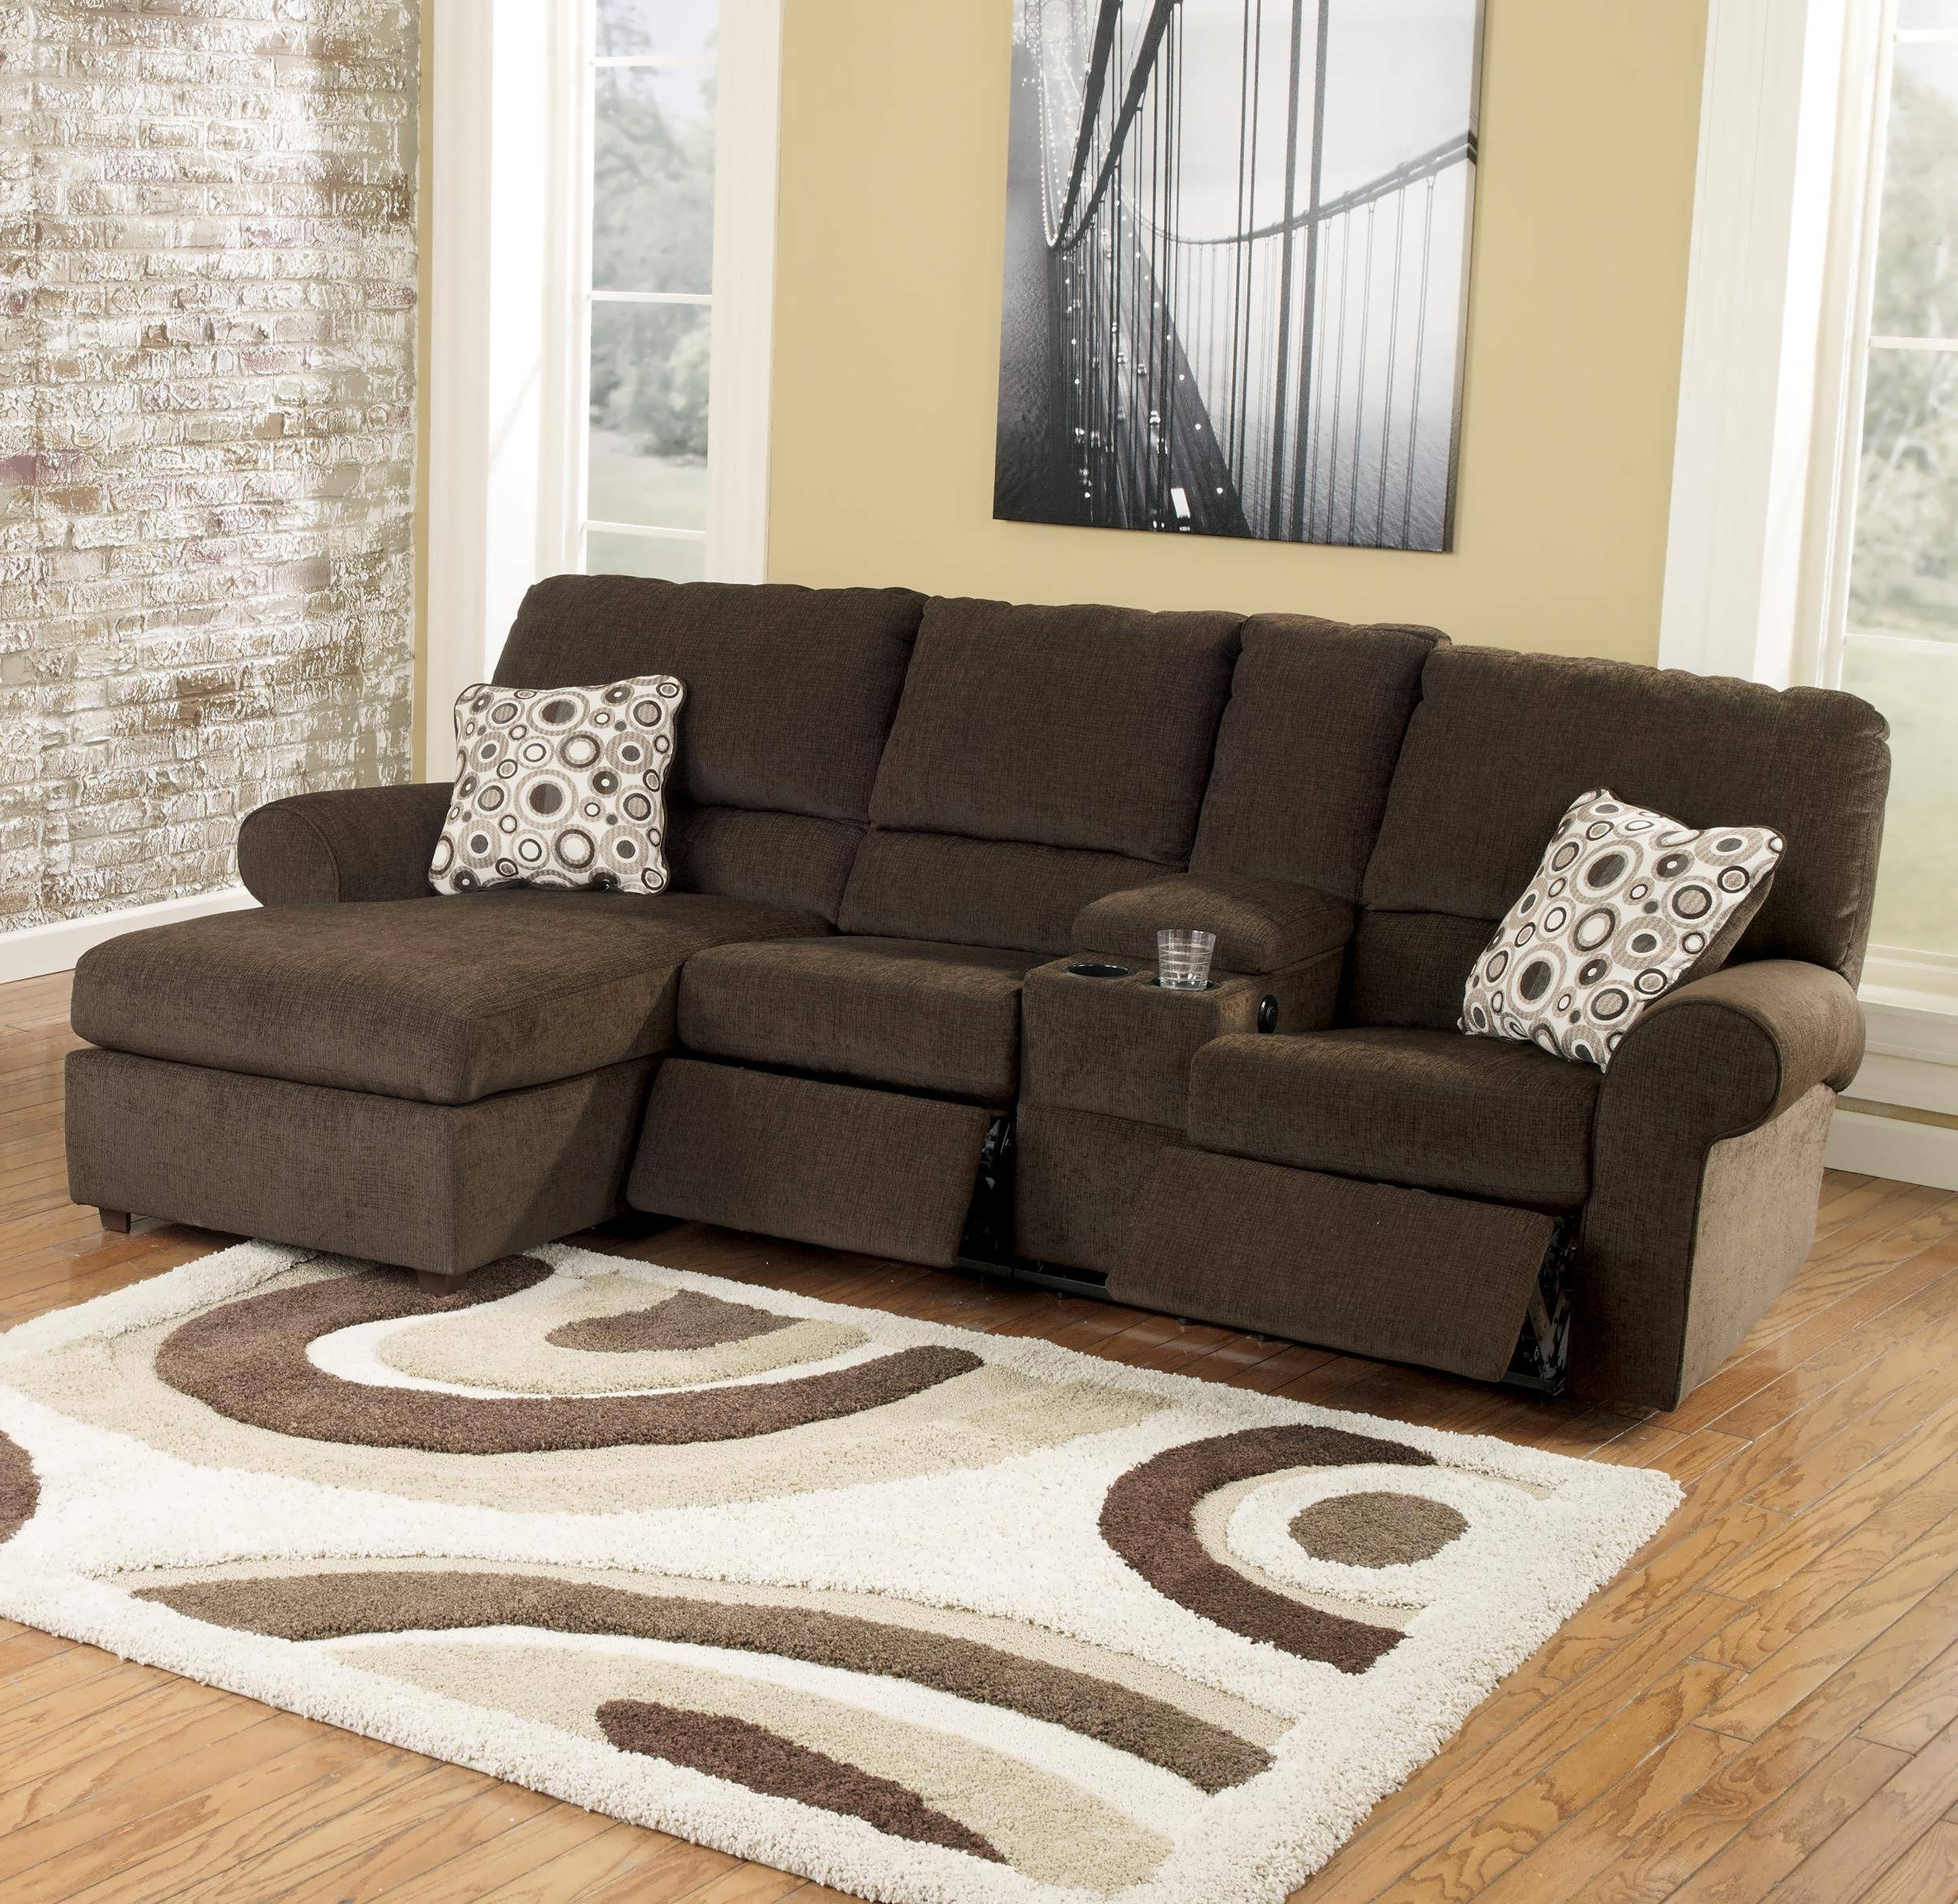 Sofa : Small Sectional Sofa With Chaise Small Sectional Couch With Most Current Sectional Sofas With Recliners And Chaise (View 7 of 15)